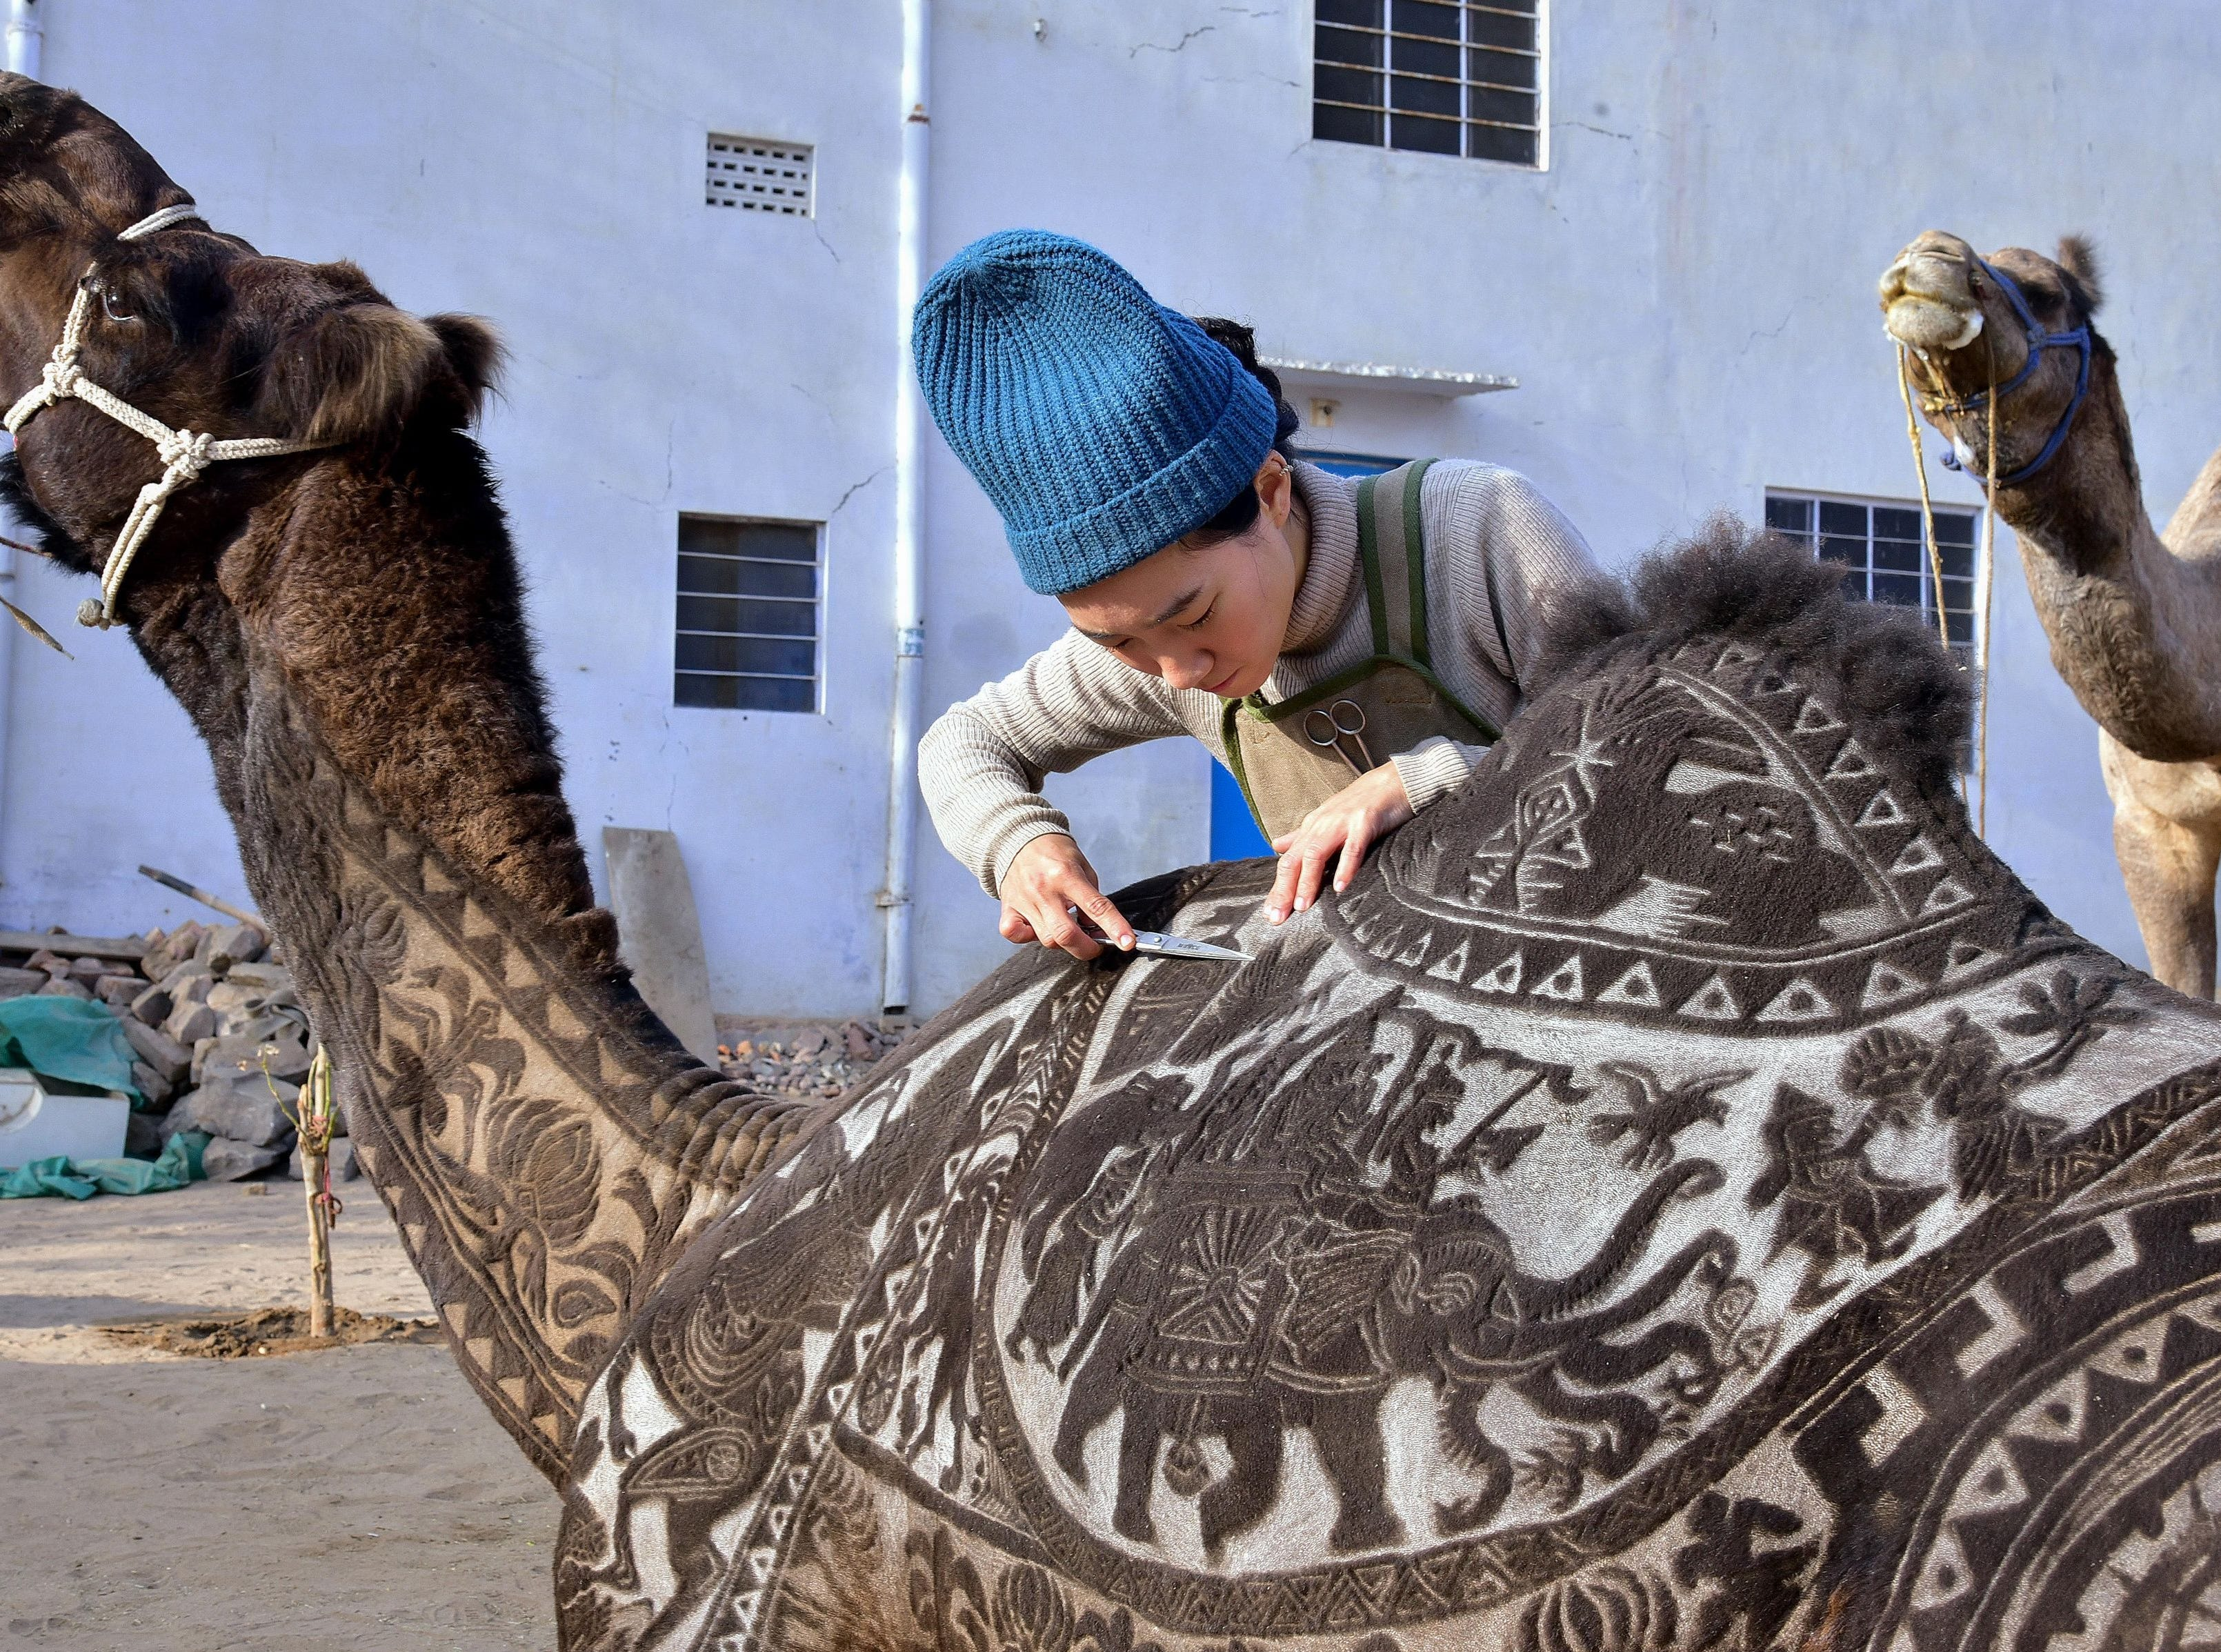 Japanese hairdresser Megumi Takeichi cuts patterns into the hair of a camel ahead of the Bikaner Camel Festival in Bikaner in the western Indian state of Rajasthan on January 10, 2019.